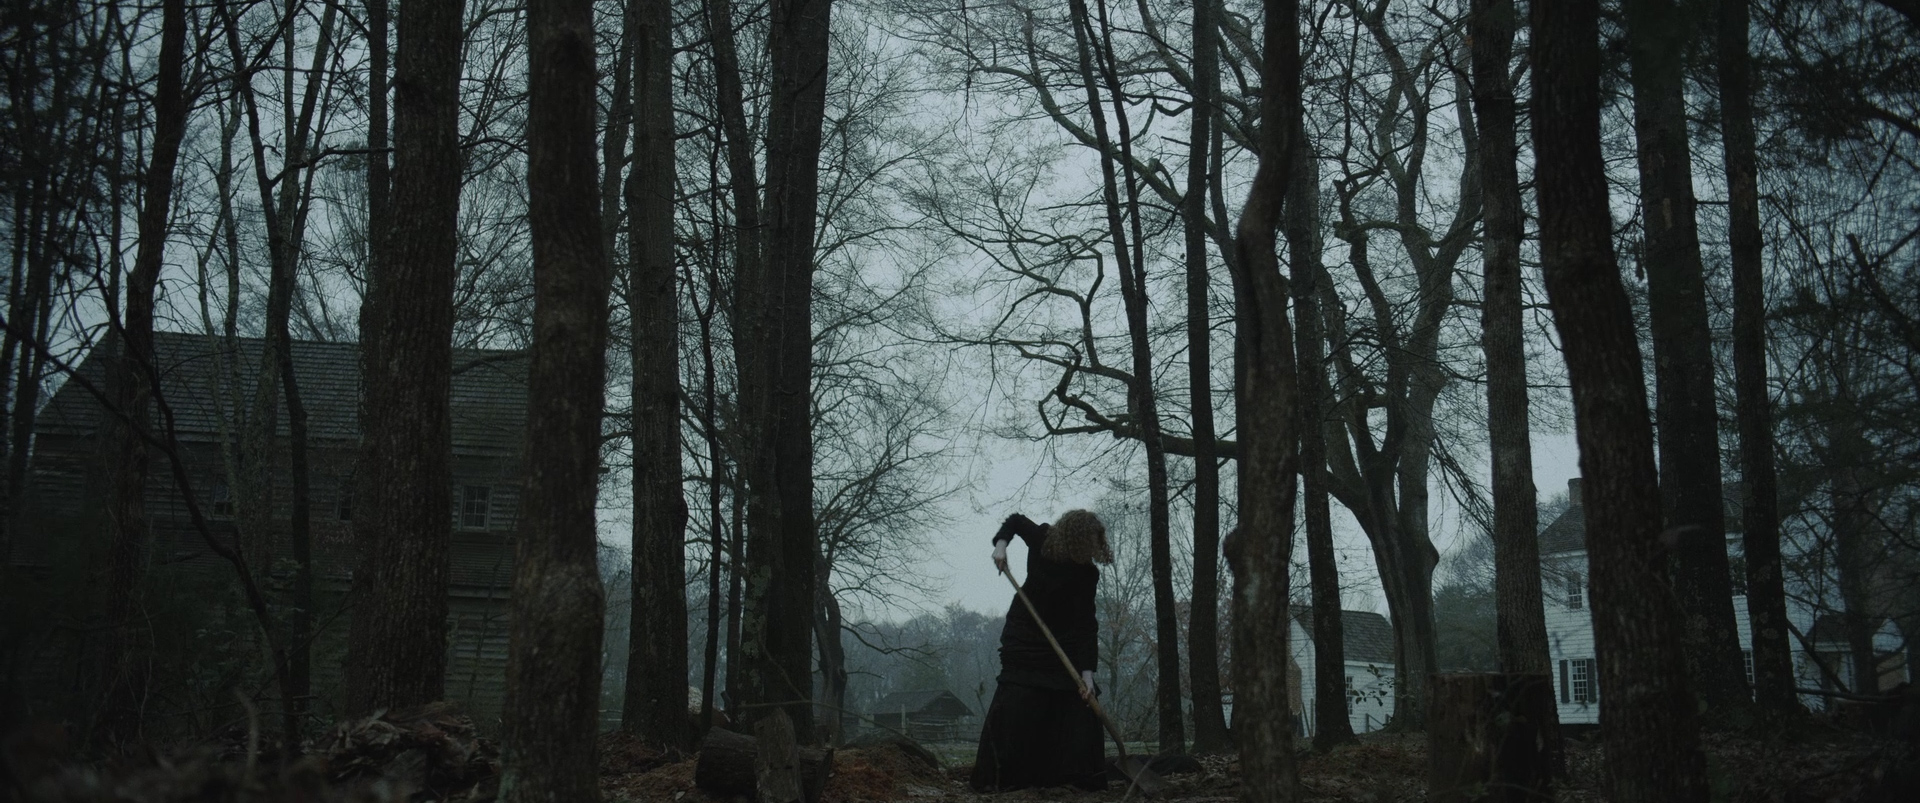 A girl in a black dress, surrounded by tall, black trees, digging a hole.